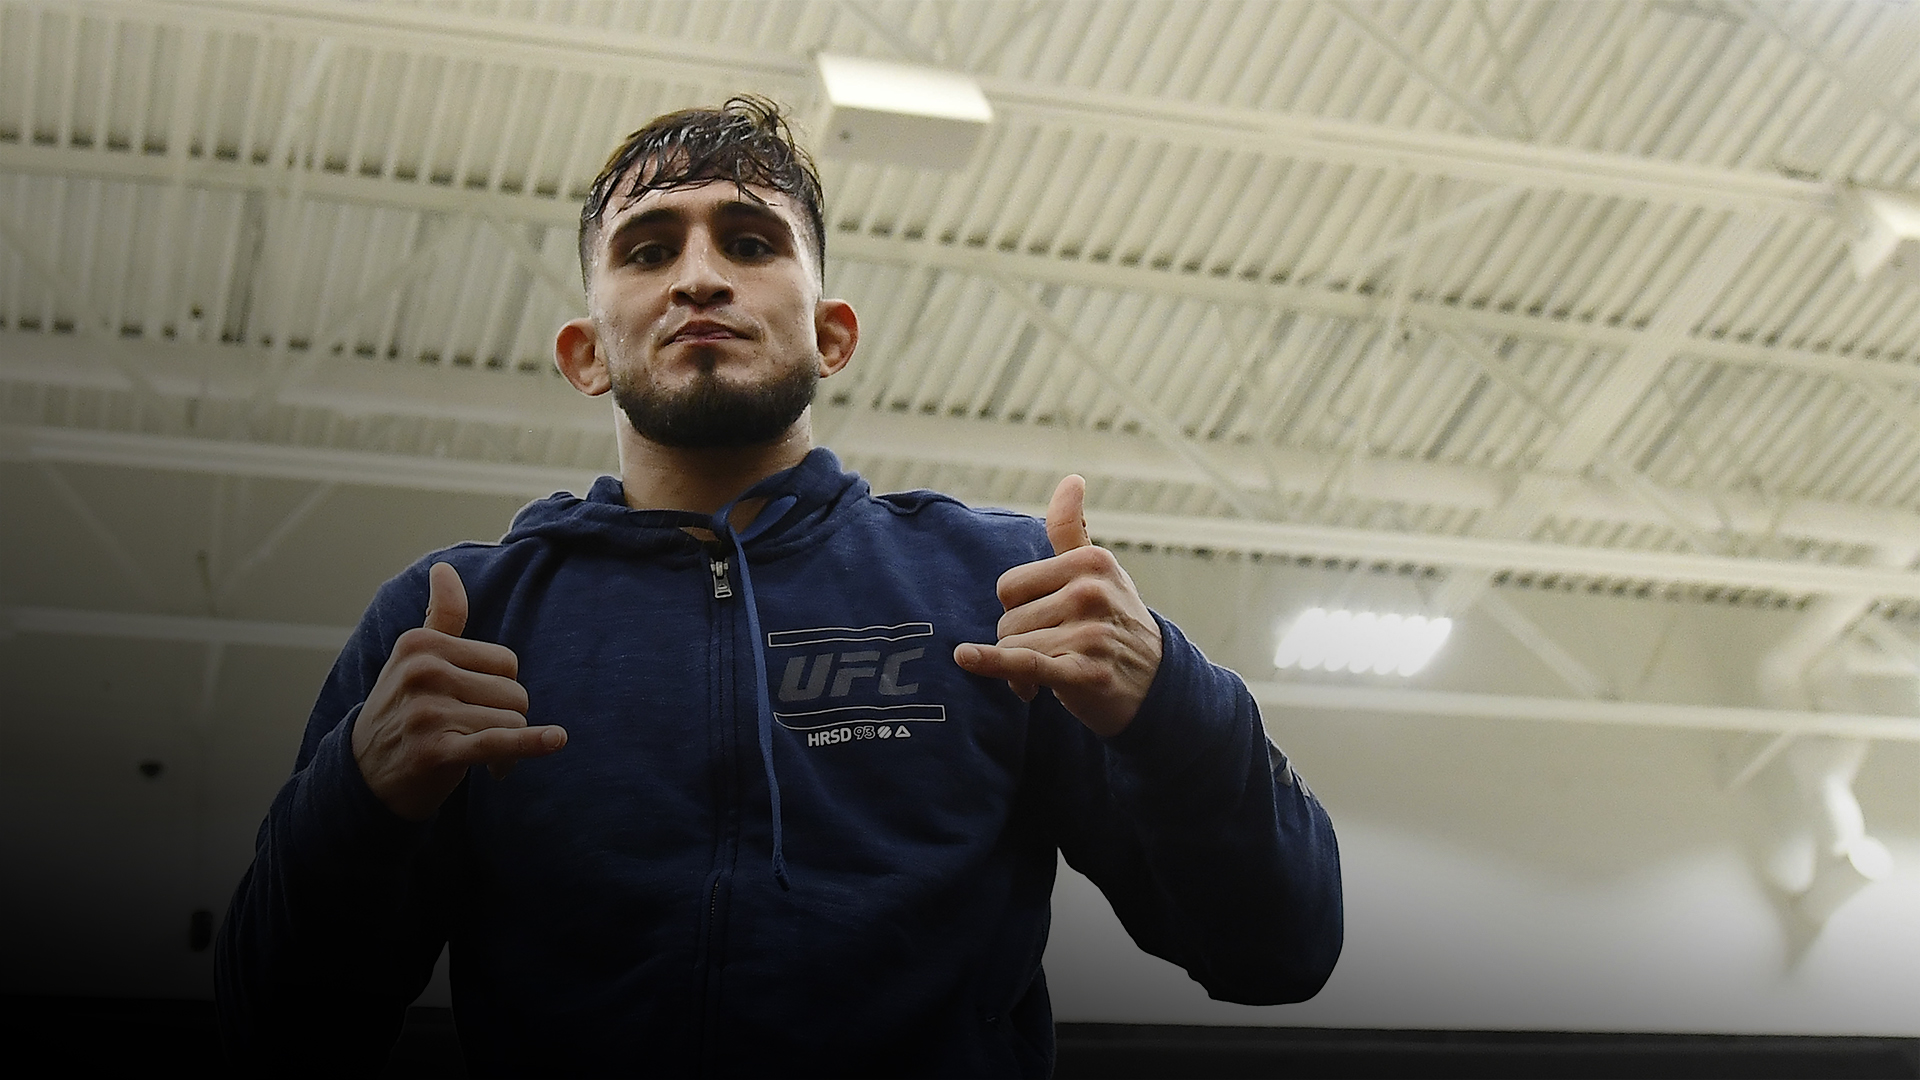 MILWAUKEE, WISCONSIN - DECEMBER 12: Sergio Pettis participates in open workouts on December 12, 2018 in Milwaukee, Wisconsin. (Photo by Stacy Revere/Zuffa LLC/Zuffa LLC)